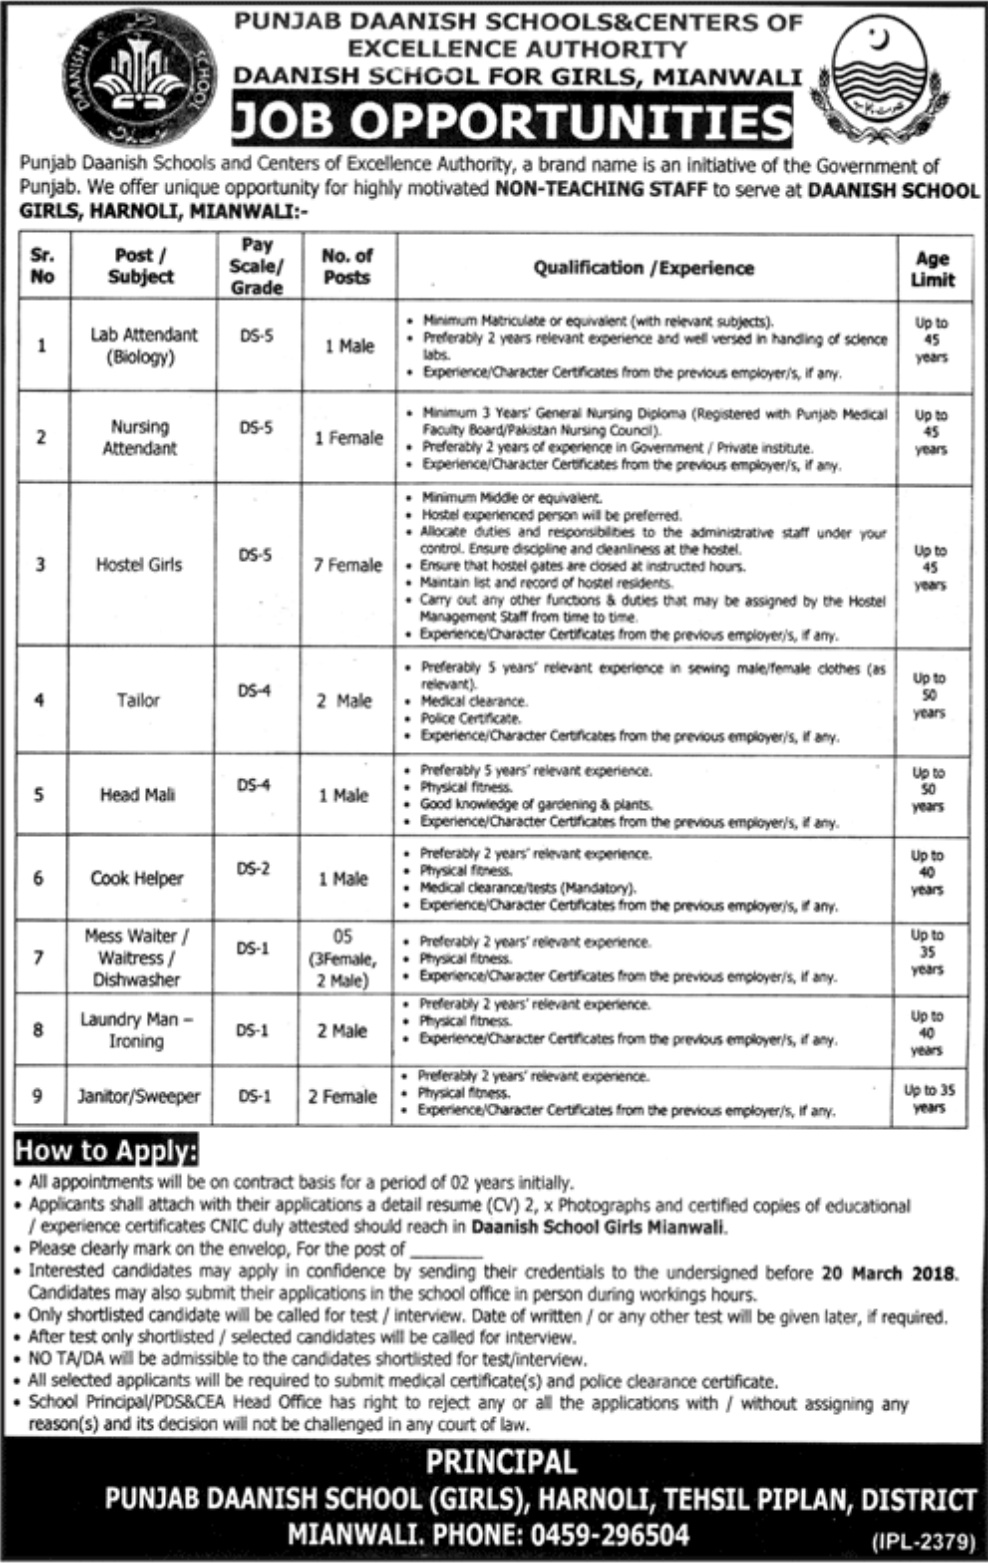 Punjab Daanish School Mianwali 22 Jobs 26th February 2018 Daily Jang Newspaper